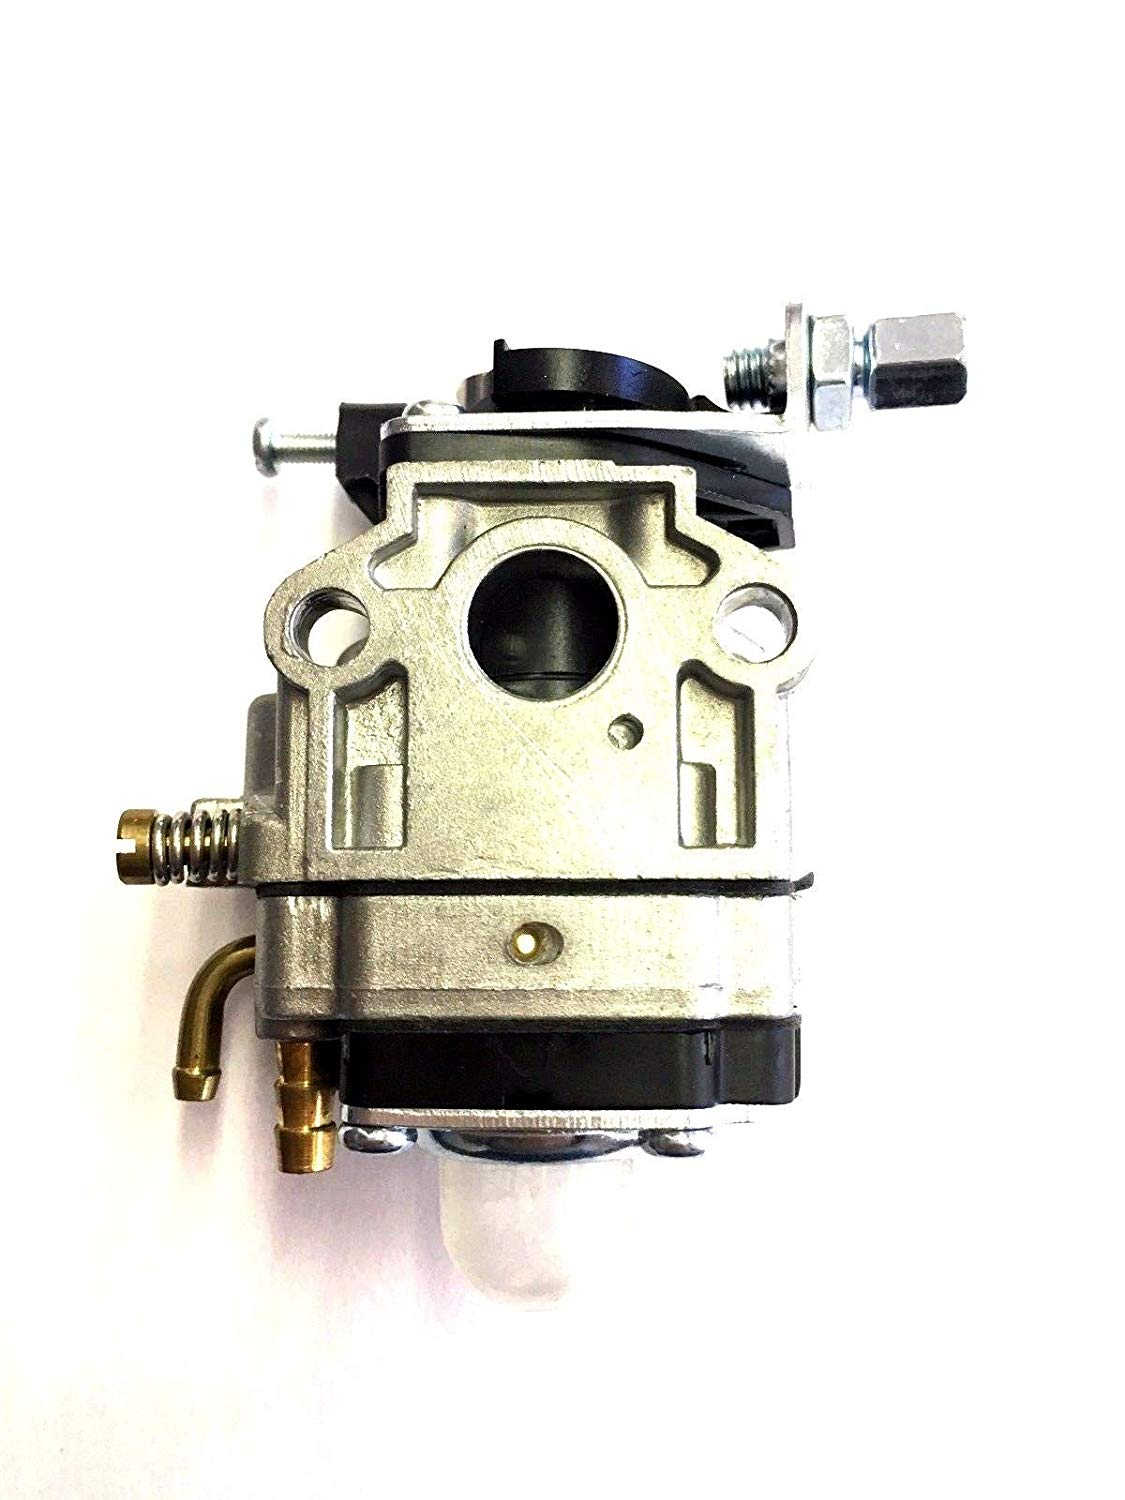 Cheap Goped Carb Adjustment, find Goped Carb Adjustment deals on